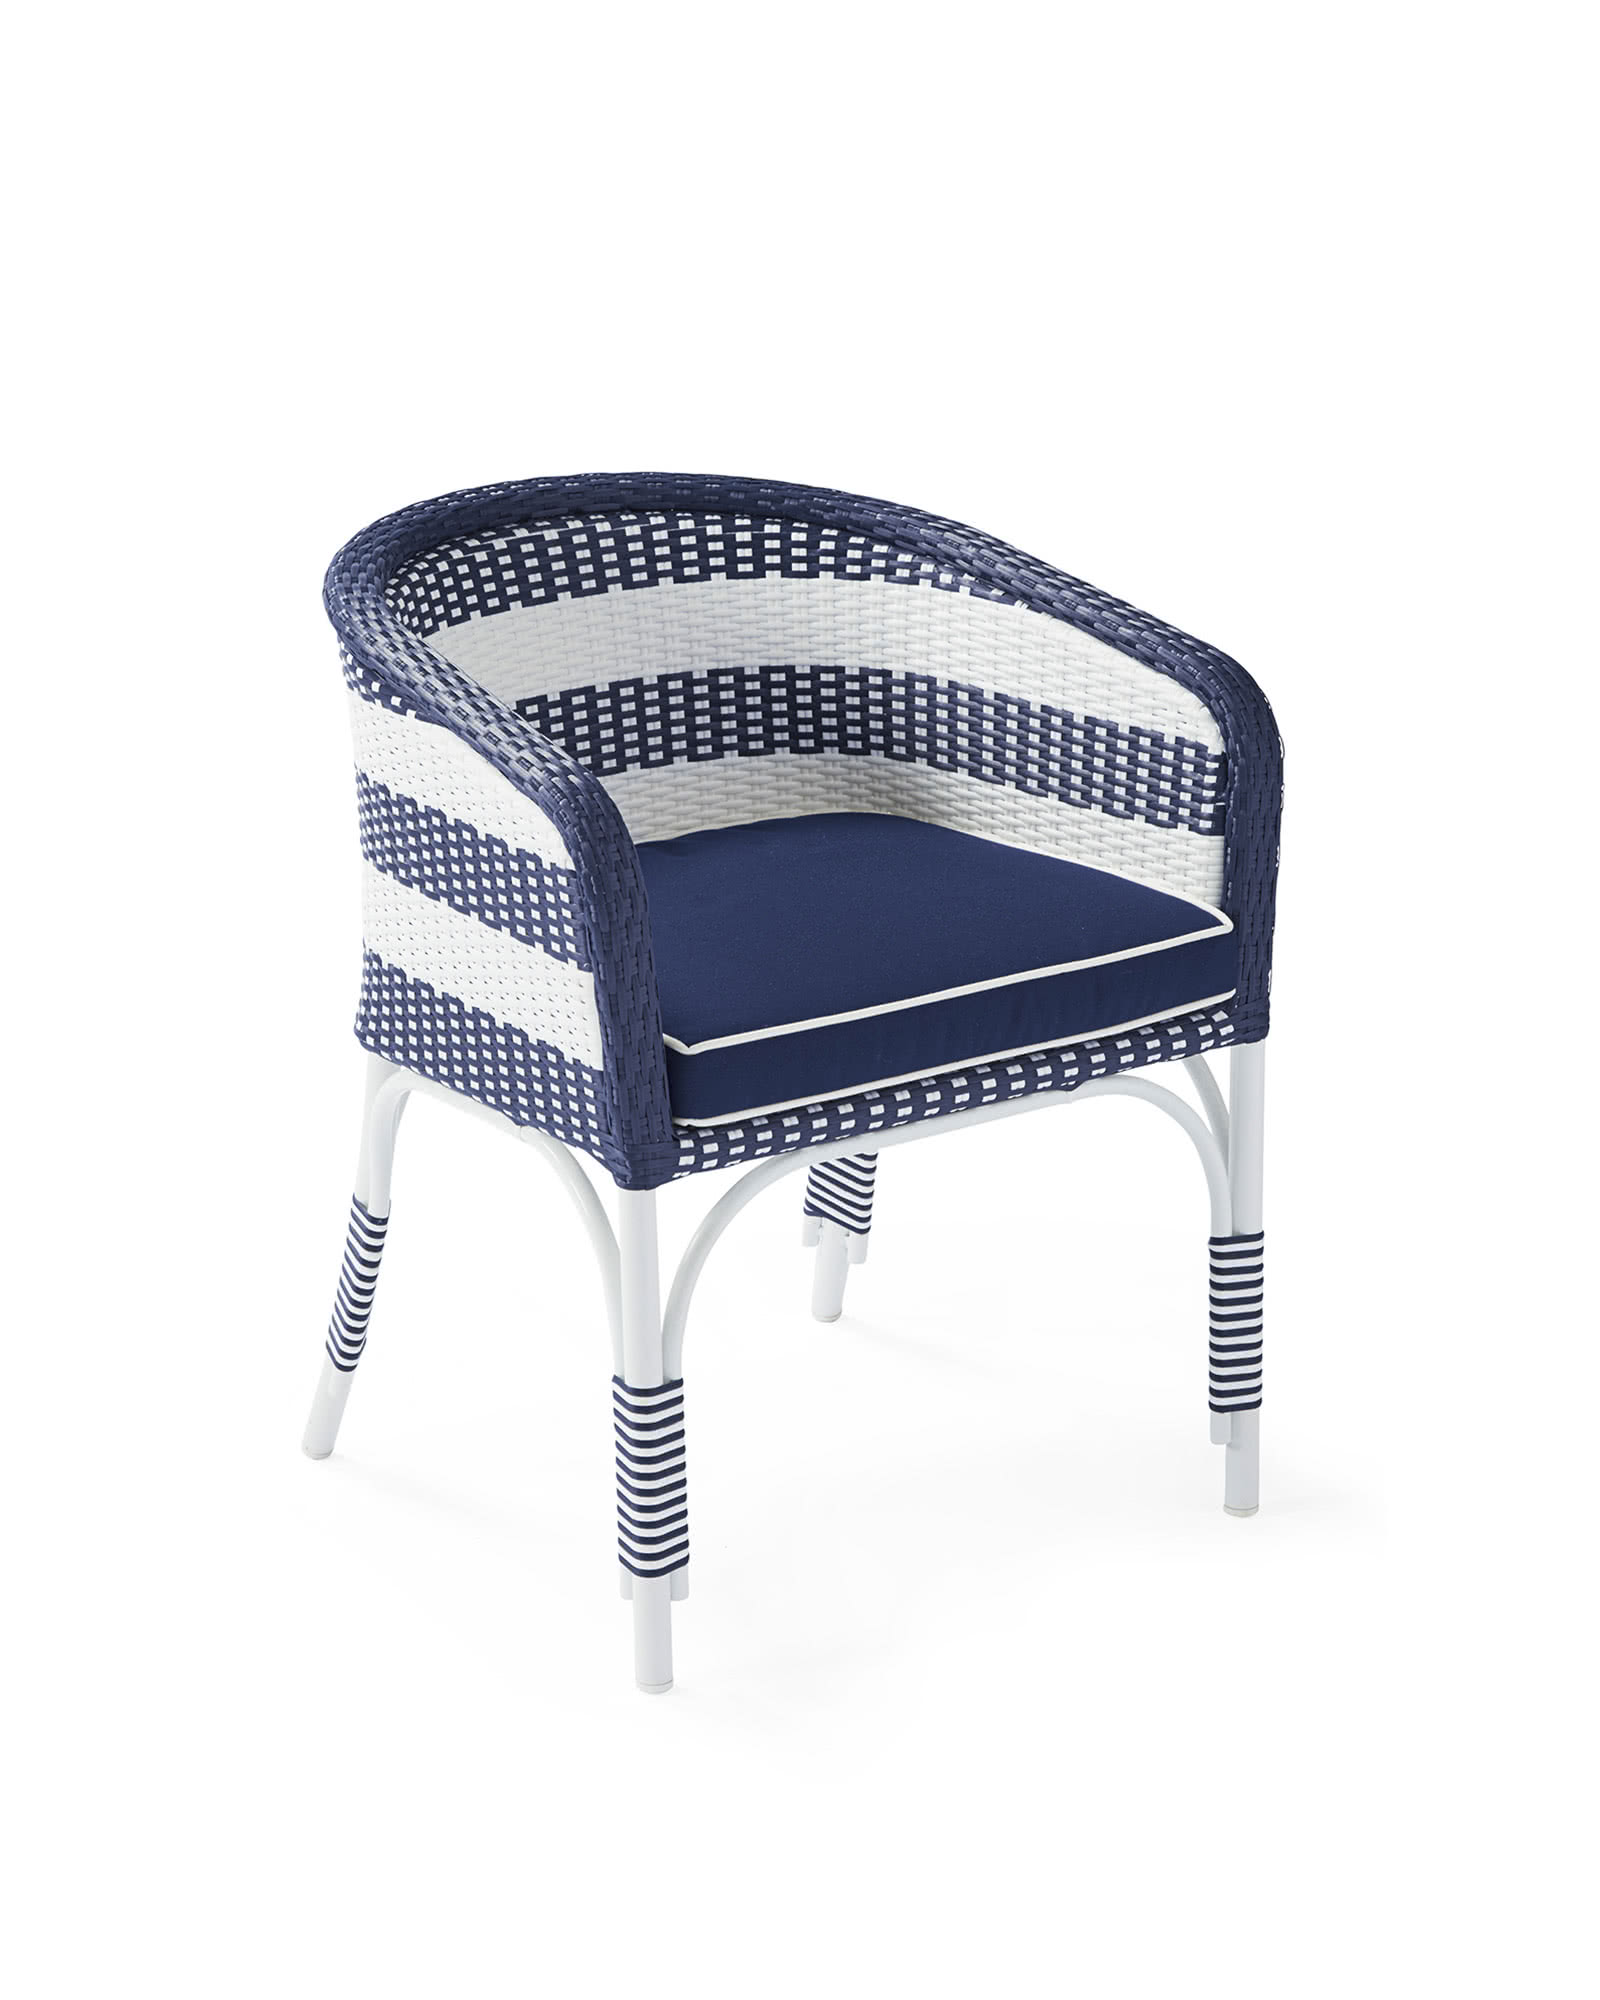 Outdoor Riviera Bucket Chair with Cushion